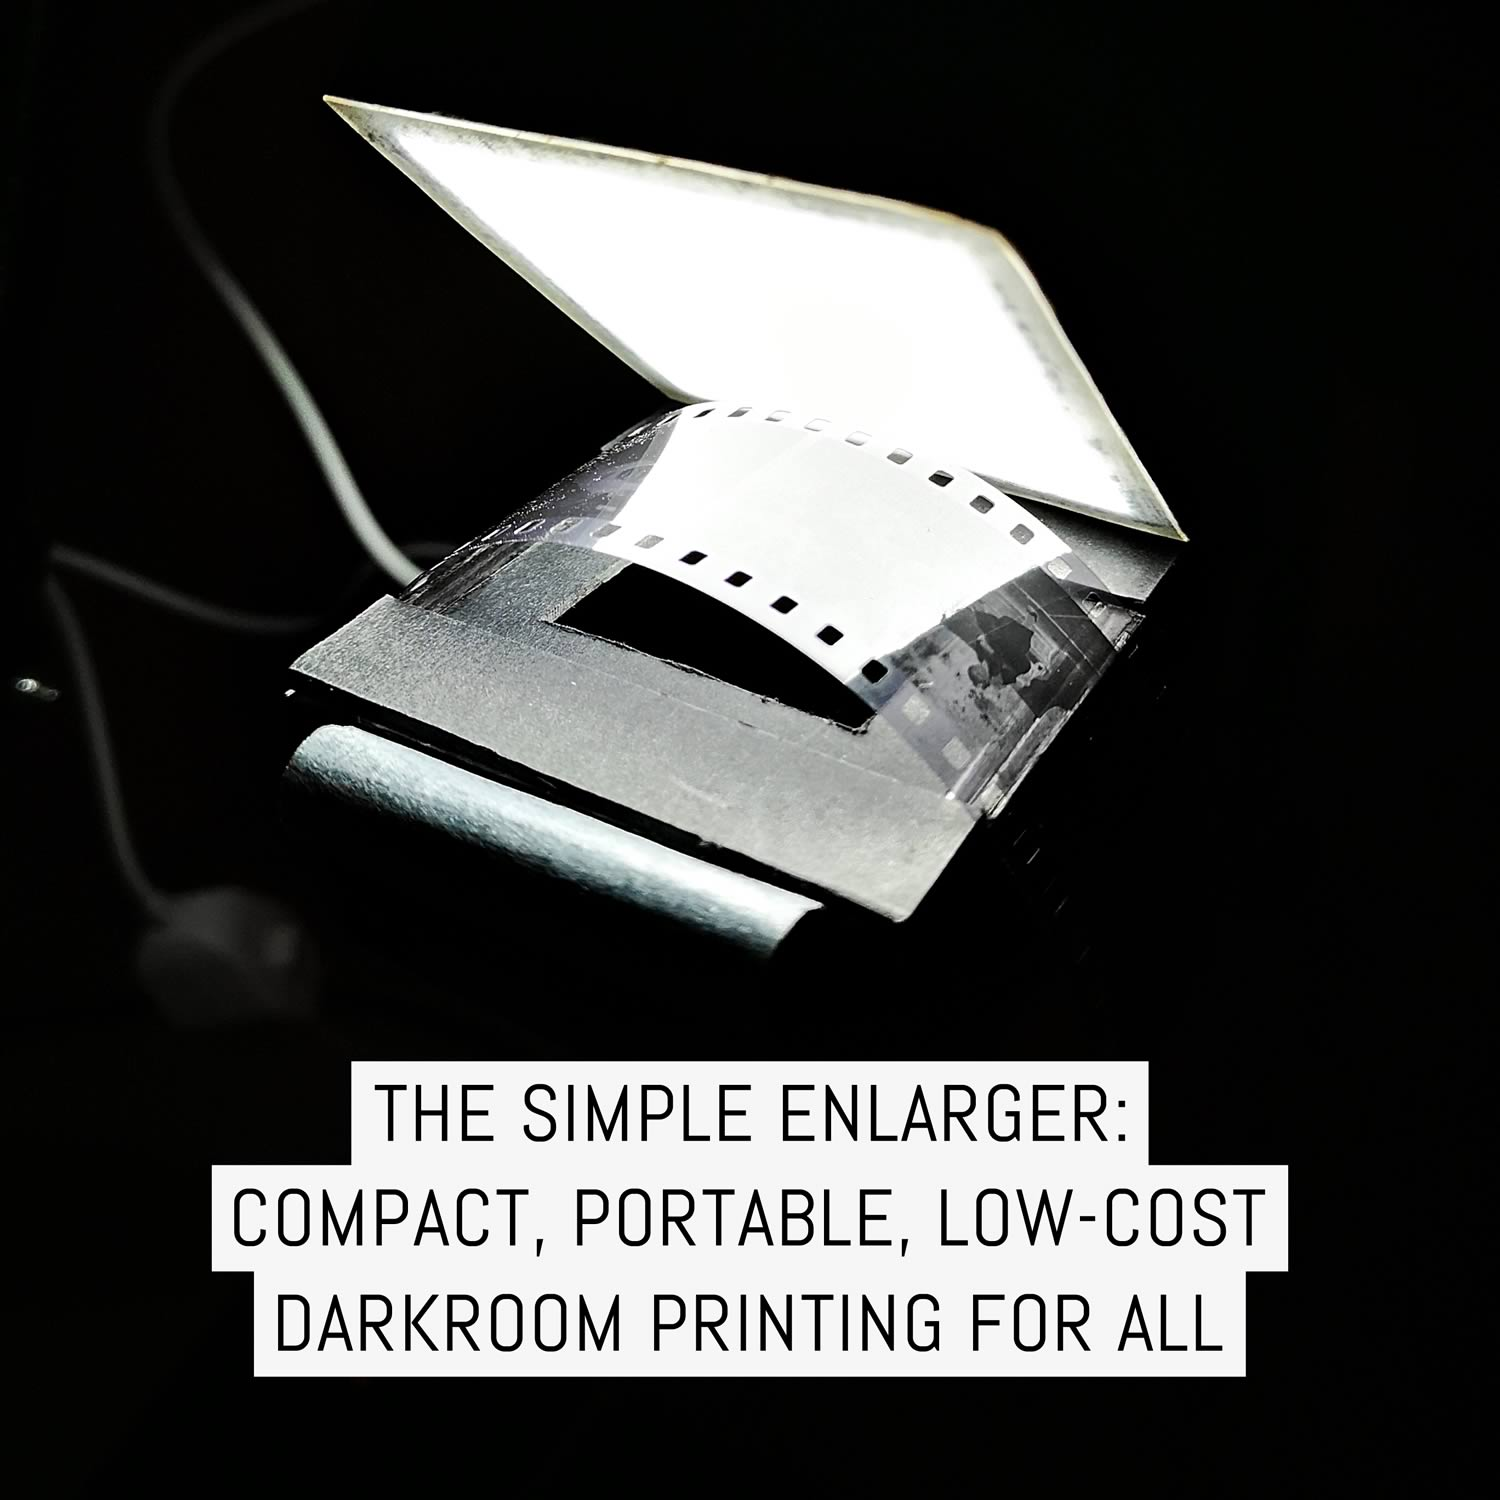 The Simple Enlarger: compact, portable, low-cost darkroom